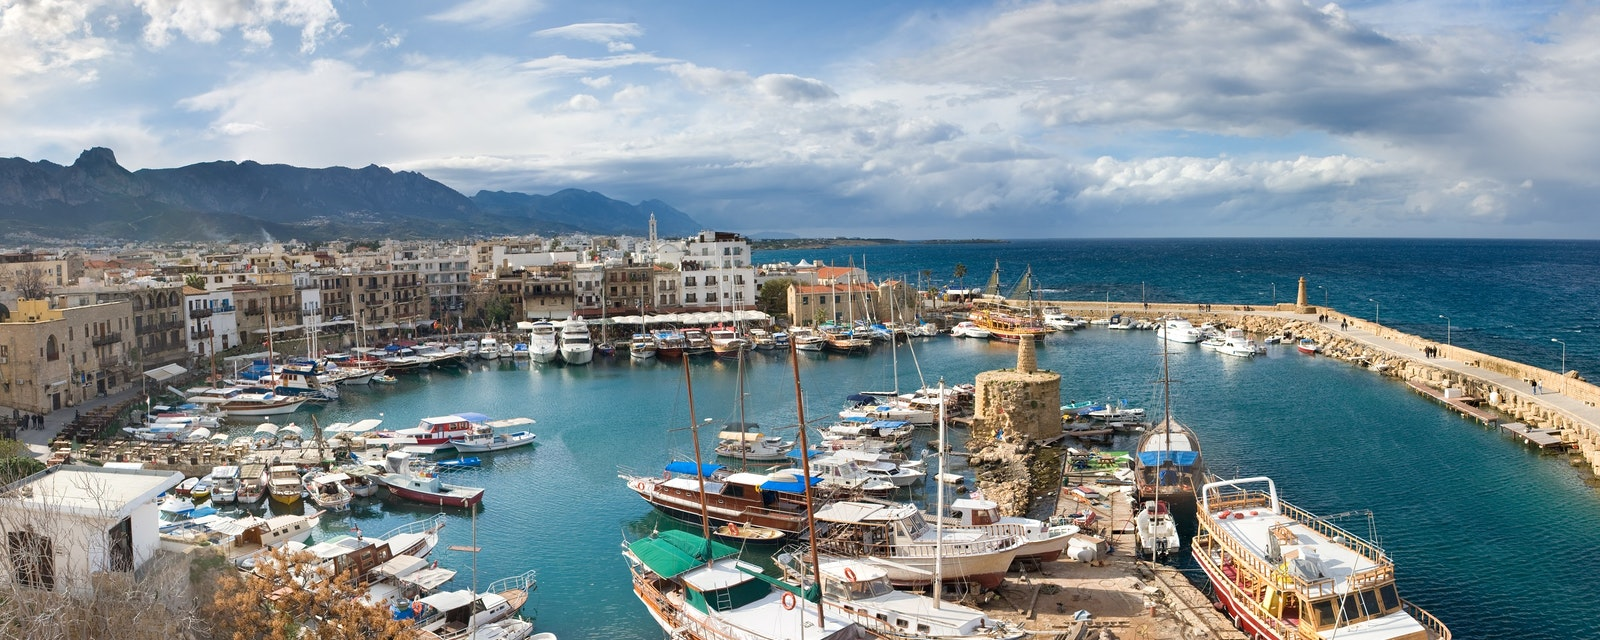 The,View,From,Girne,Castle,Harbour,,Northern,Cyprus.,Winter.